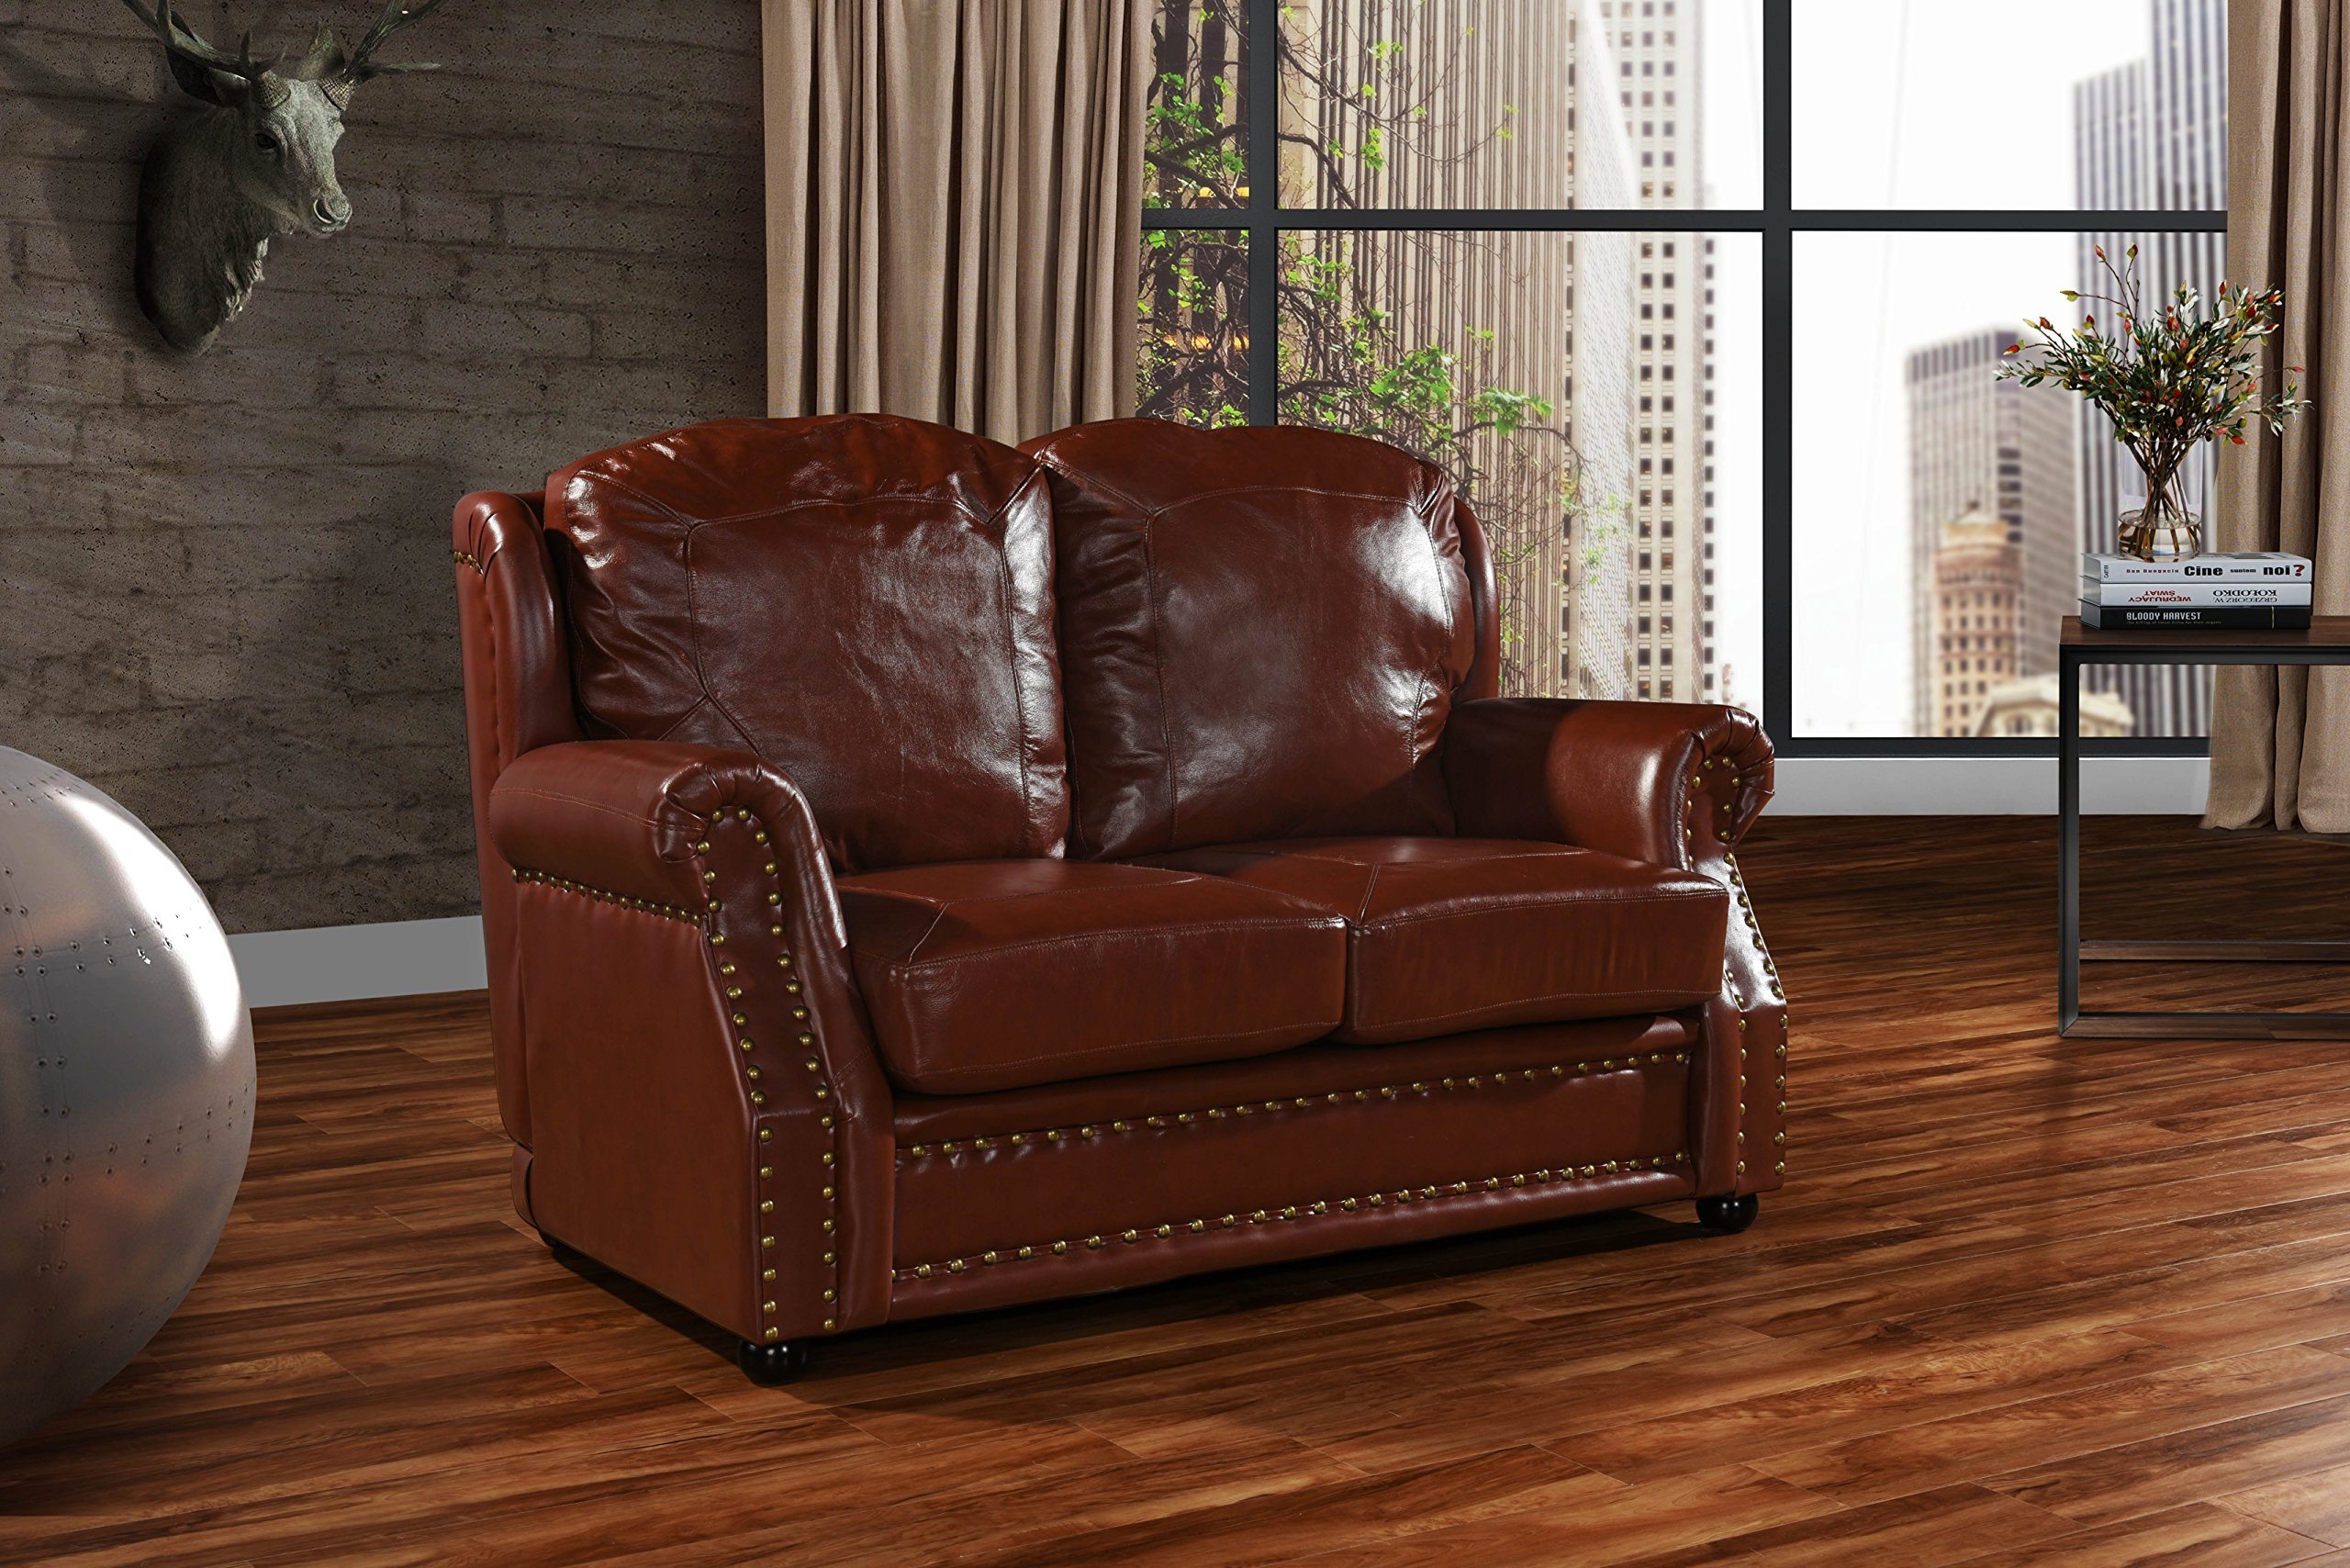 Leather Sofa 2 Seater, Living Room Couch Loveseat with Nailhead Trim (Light Brown) by Divano Roma Furniture